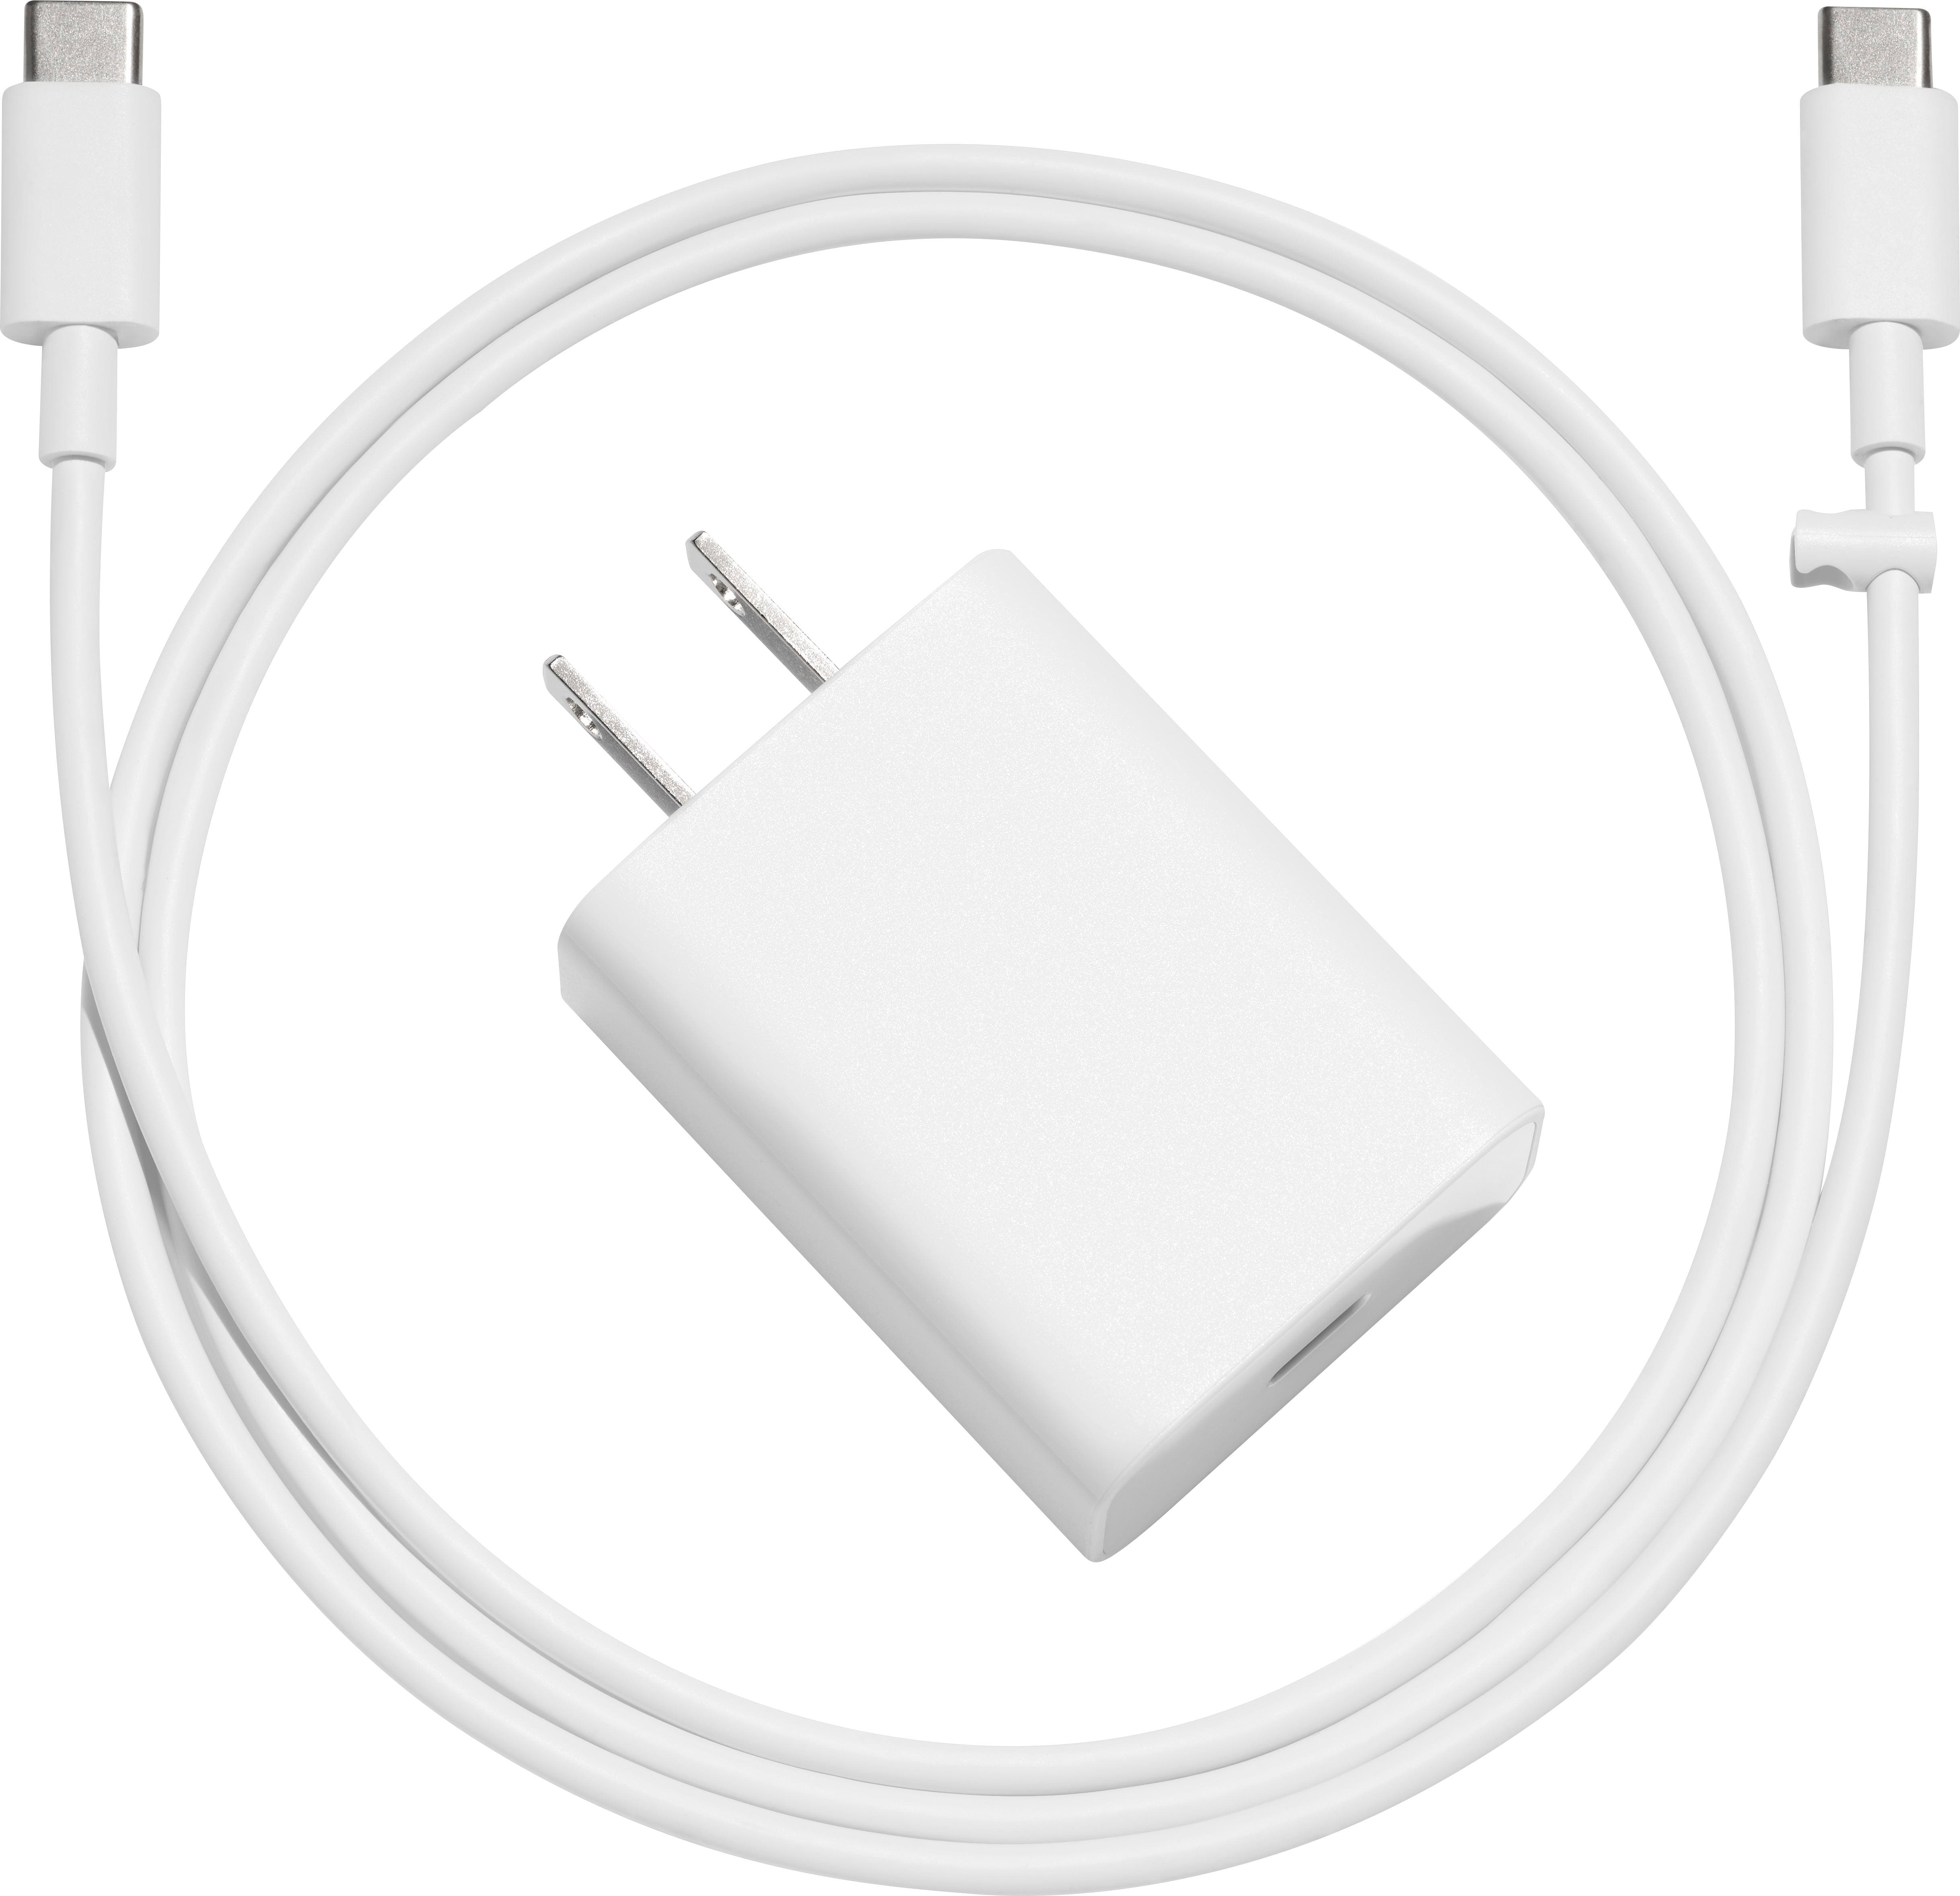 Google 18 W USB C power adapter with USB C to USB C cable $19.99